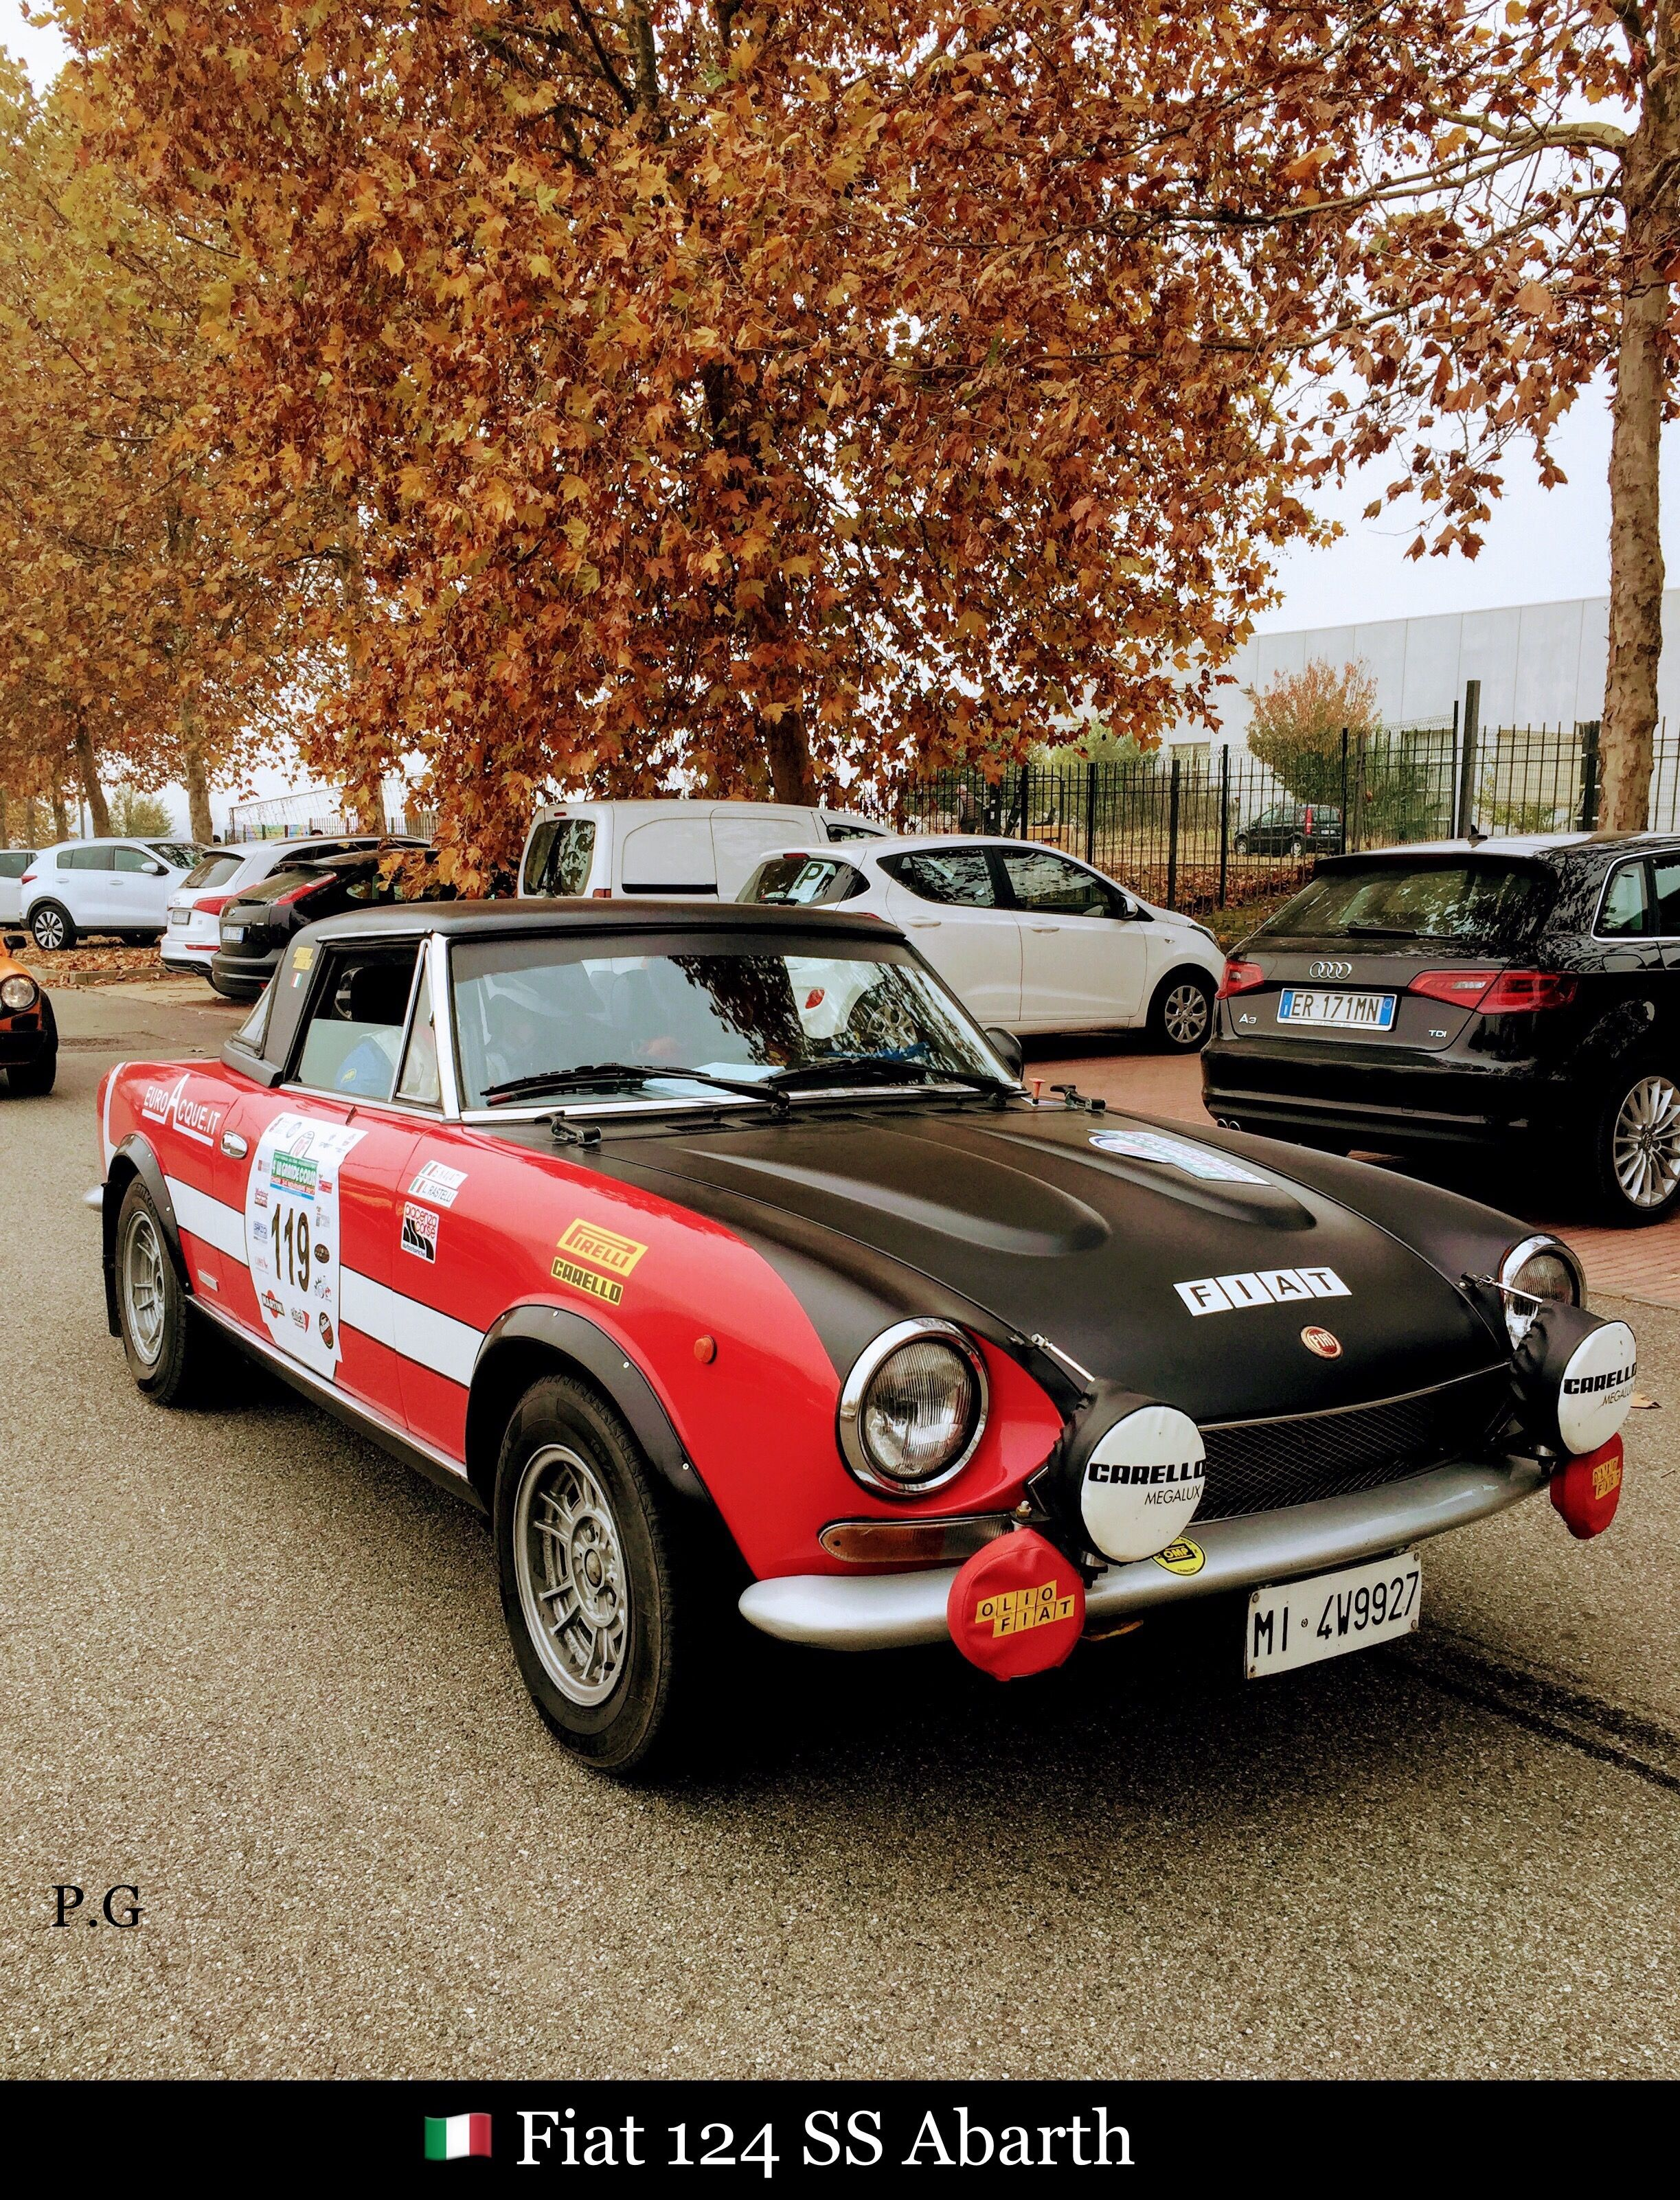 Fiat 124 Ss Abarth Cars I Like 2 Pinterest Fiat Cars And Fiat